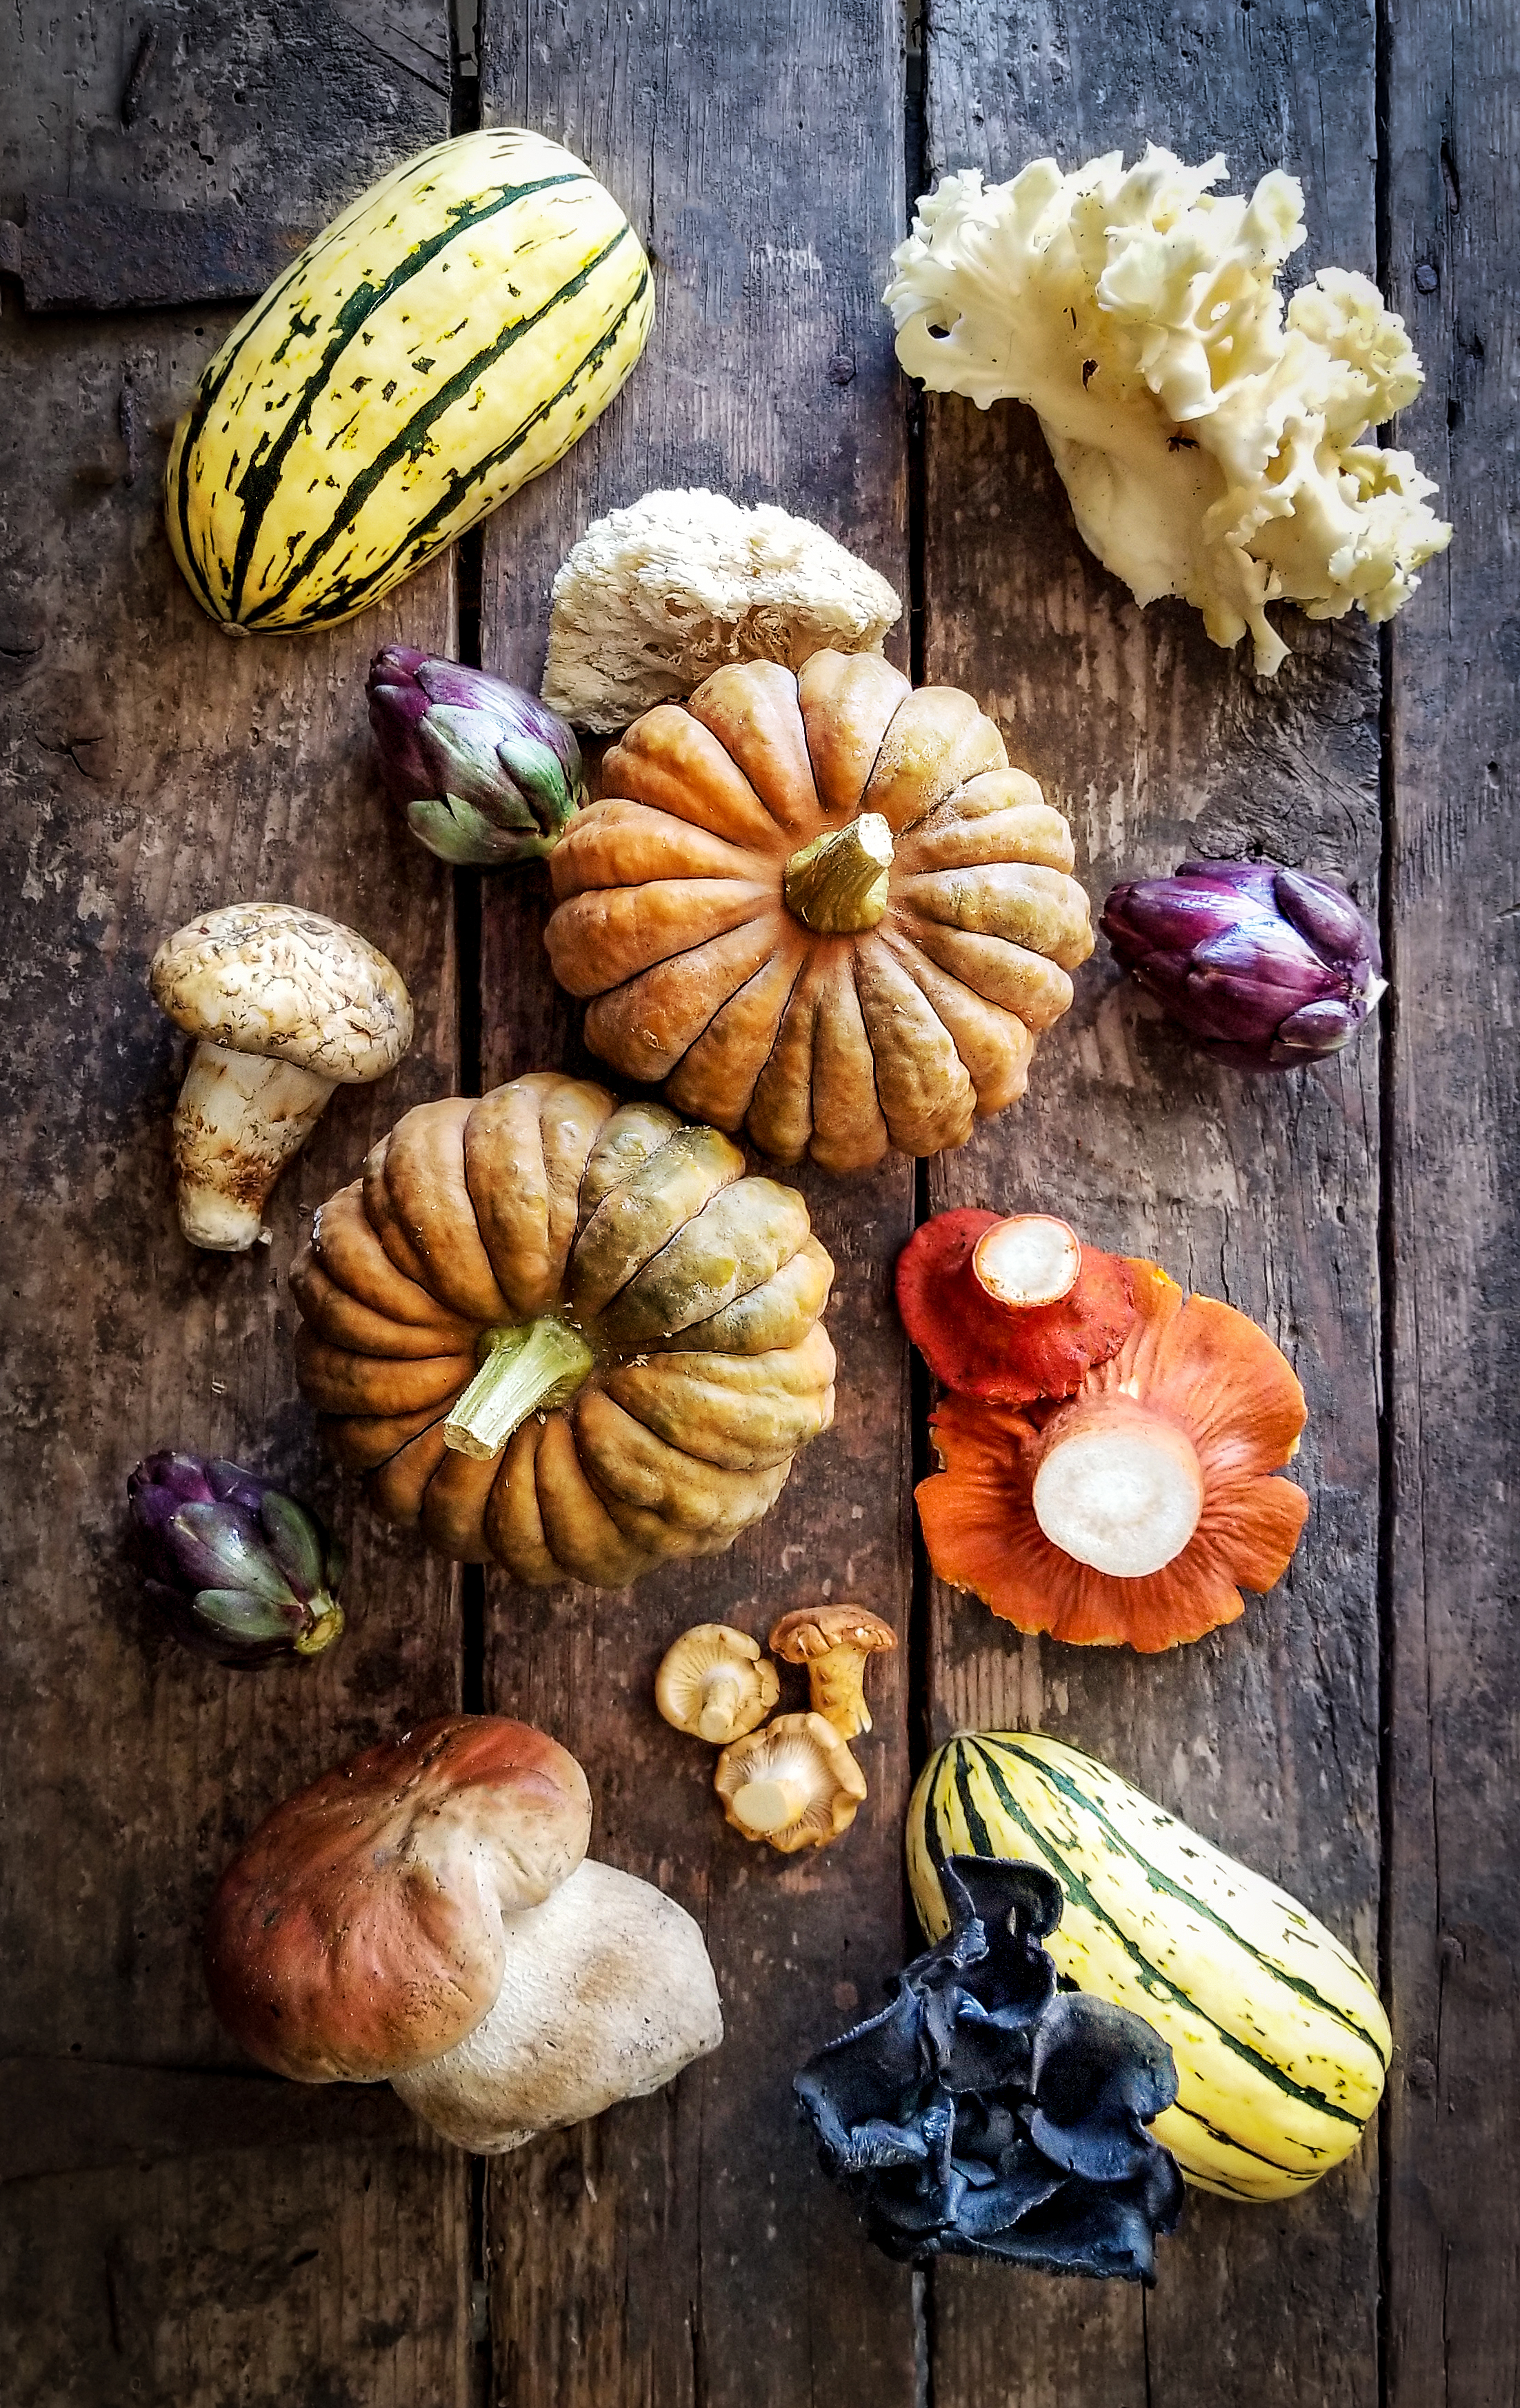 Fall harvest of hardy squashes and wild mushrooms